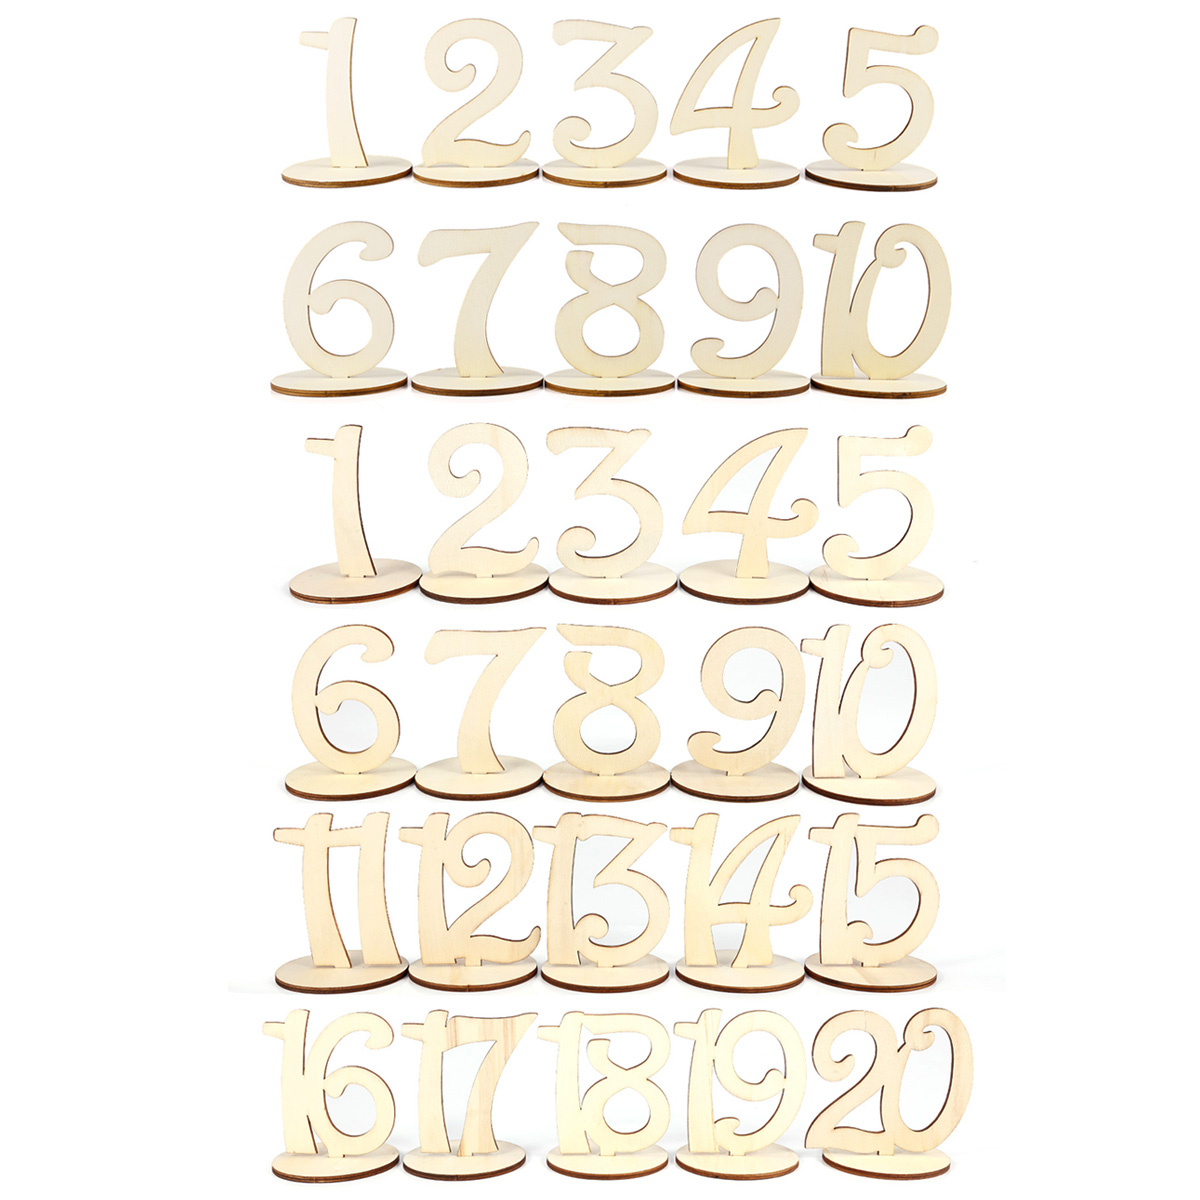 20pcs Cake Name Number Table Place Card Holder Stand For Wedding Party Birthday Venue Decoration Event & Party Home & Garden